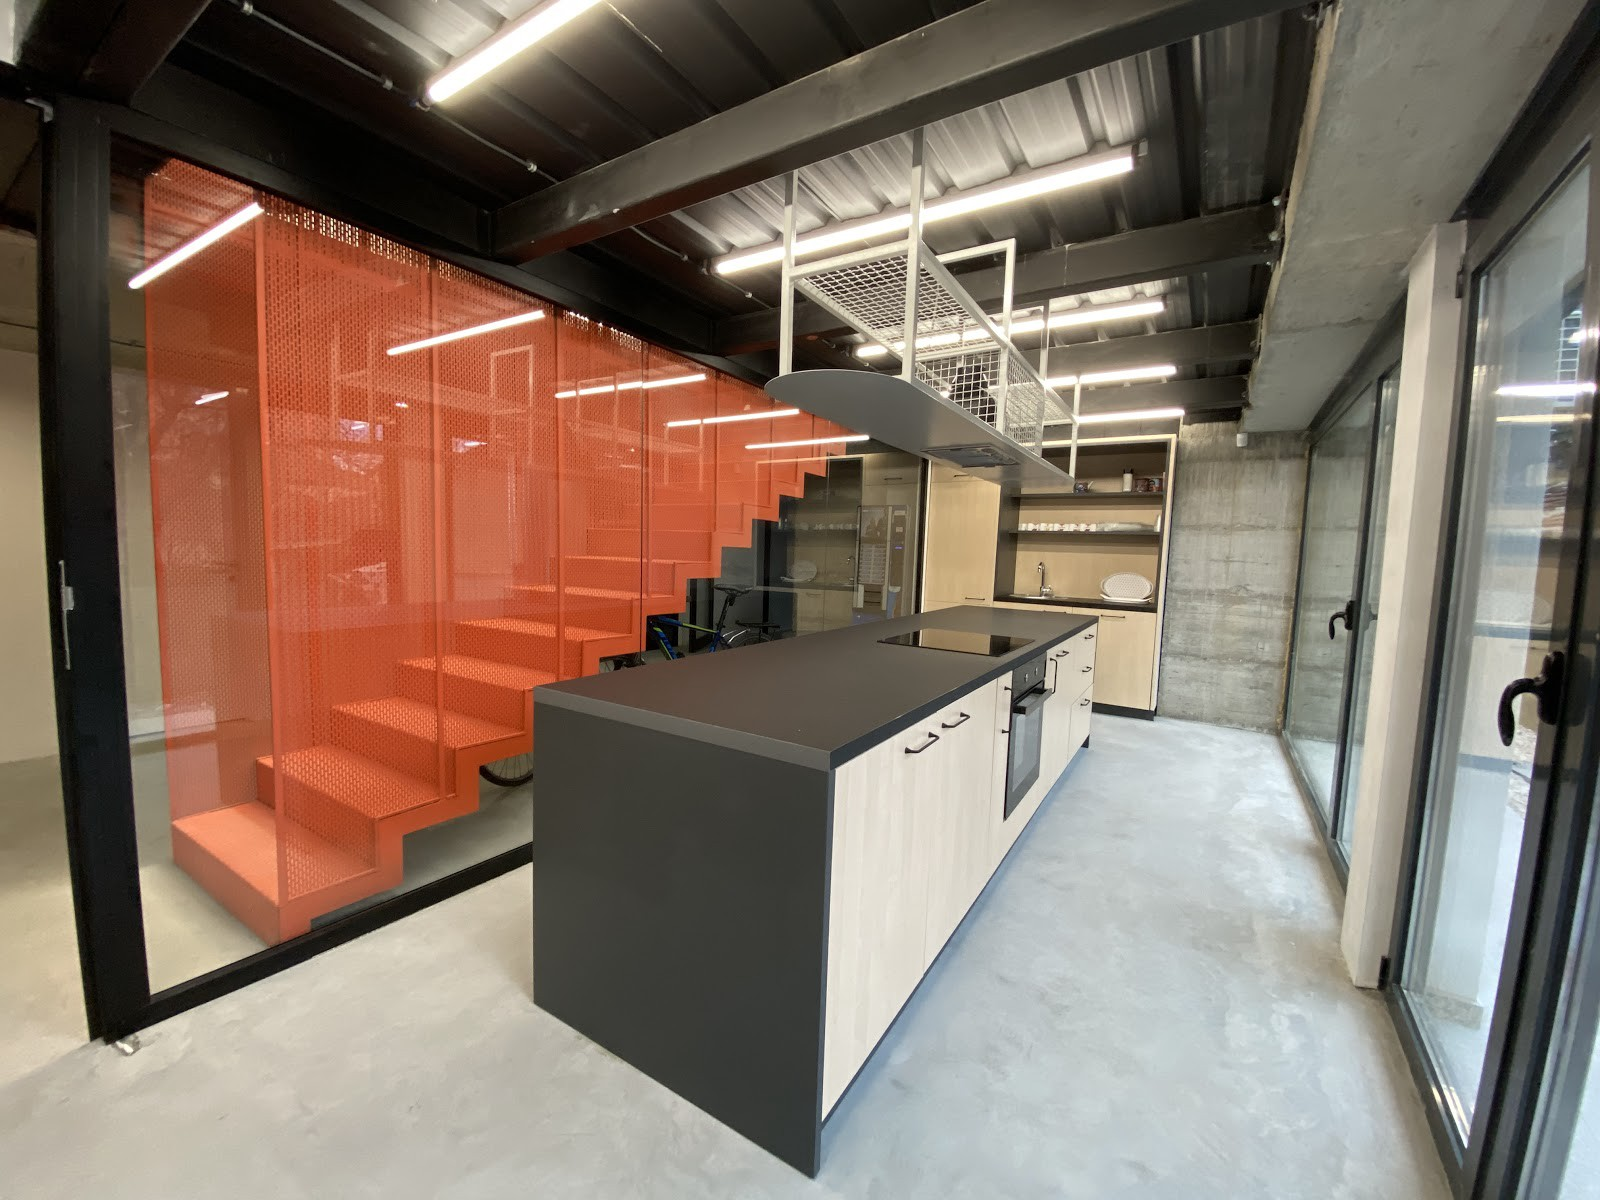 Brainster Space: New home of the local Tech community